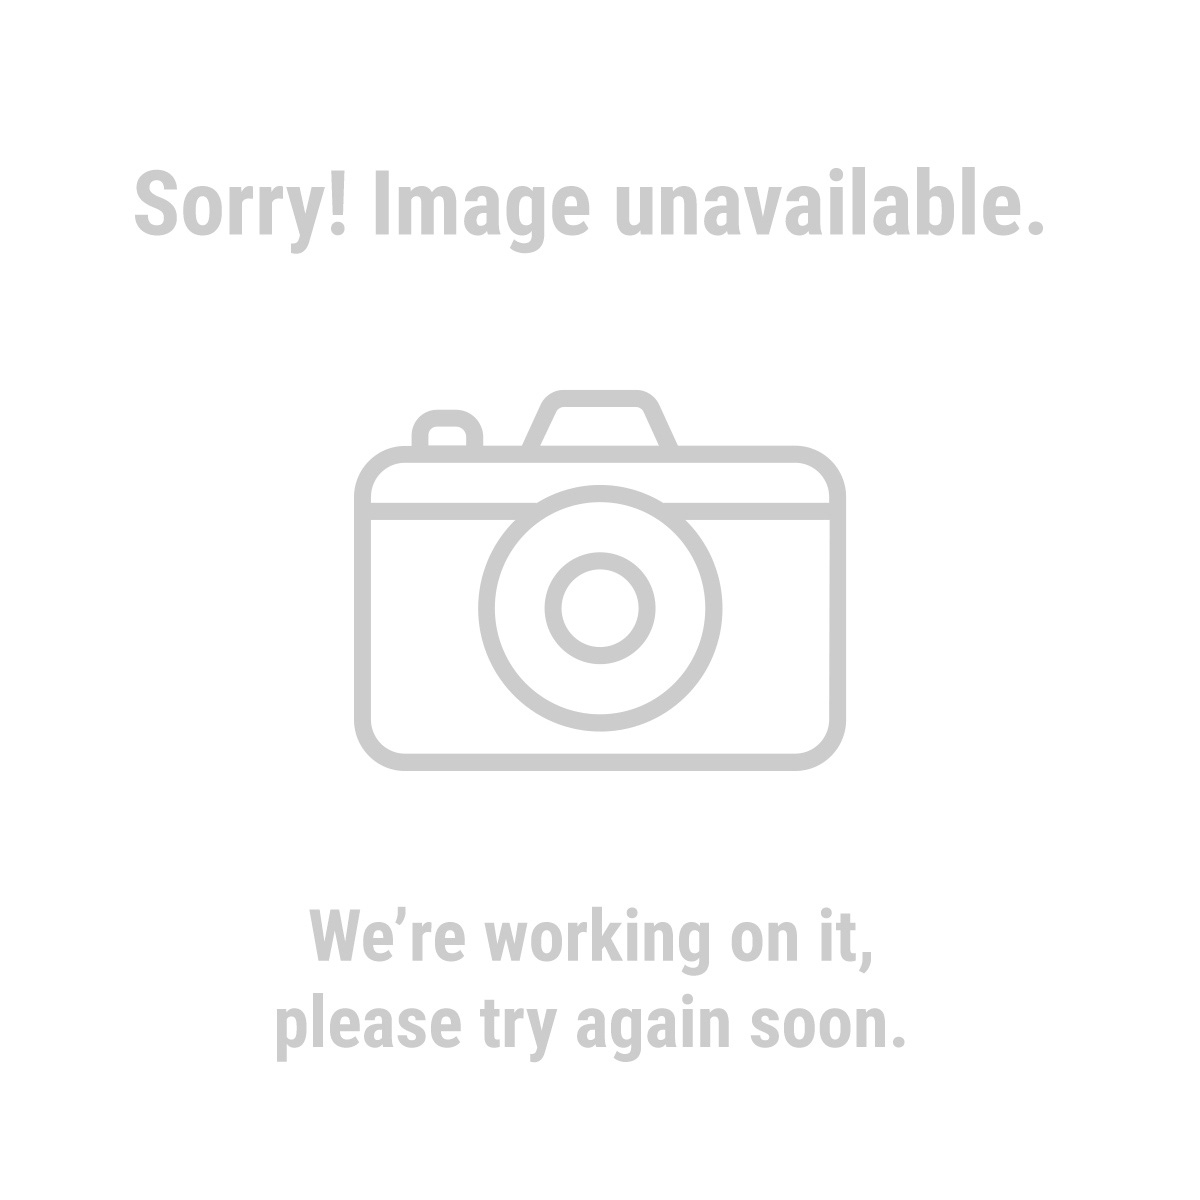 chicago electric angle grinder manual